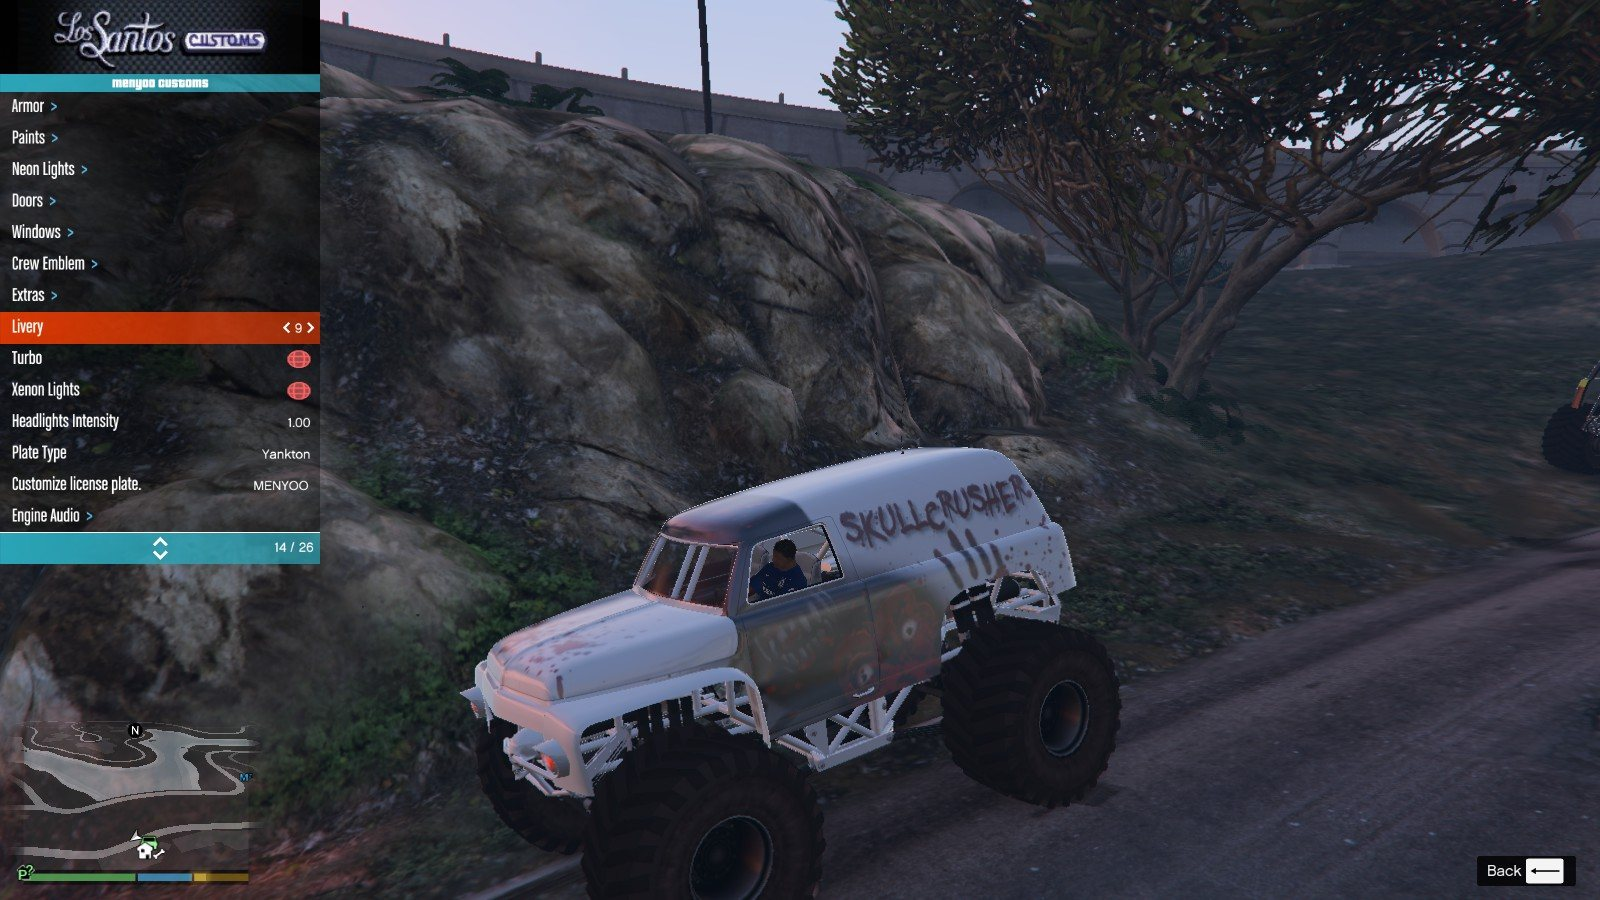 Vapid Skull Crusher GTA5 Mods (9)